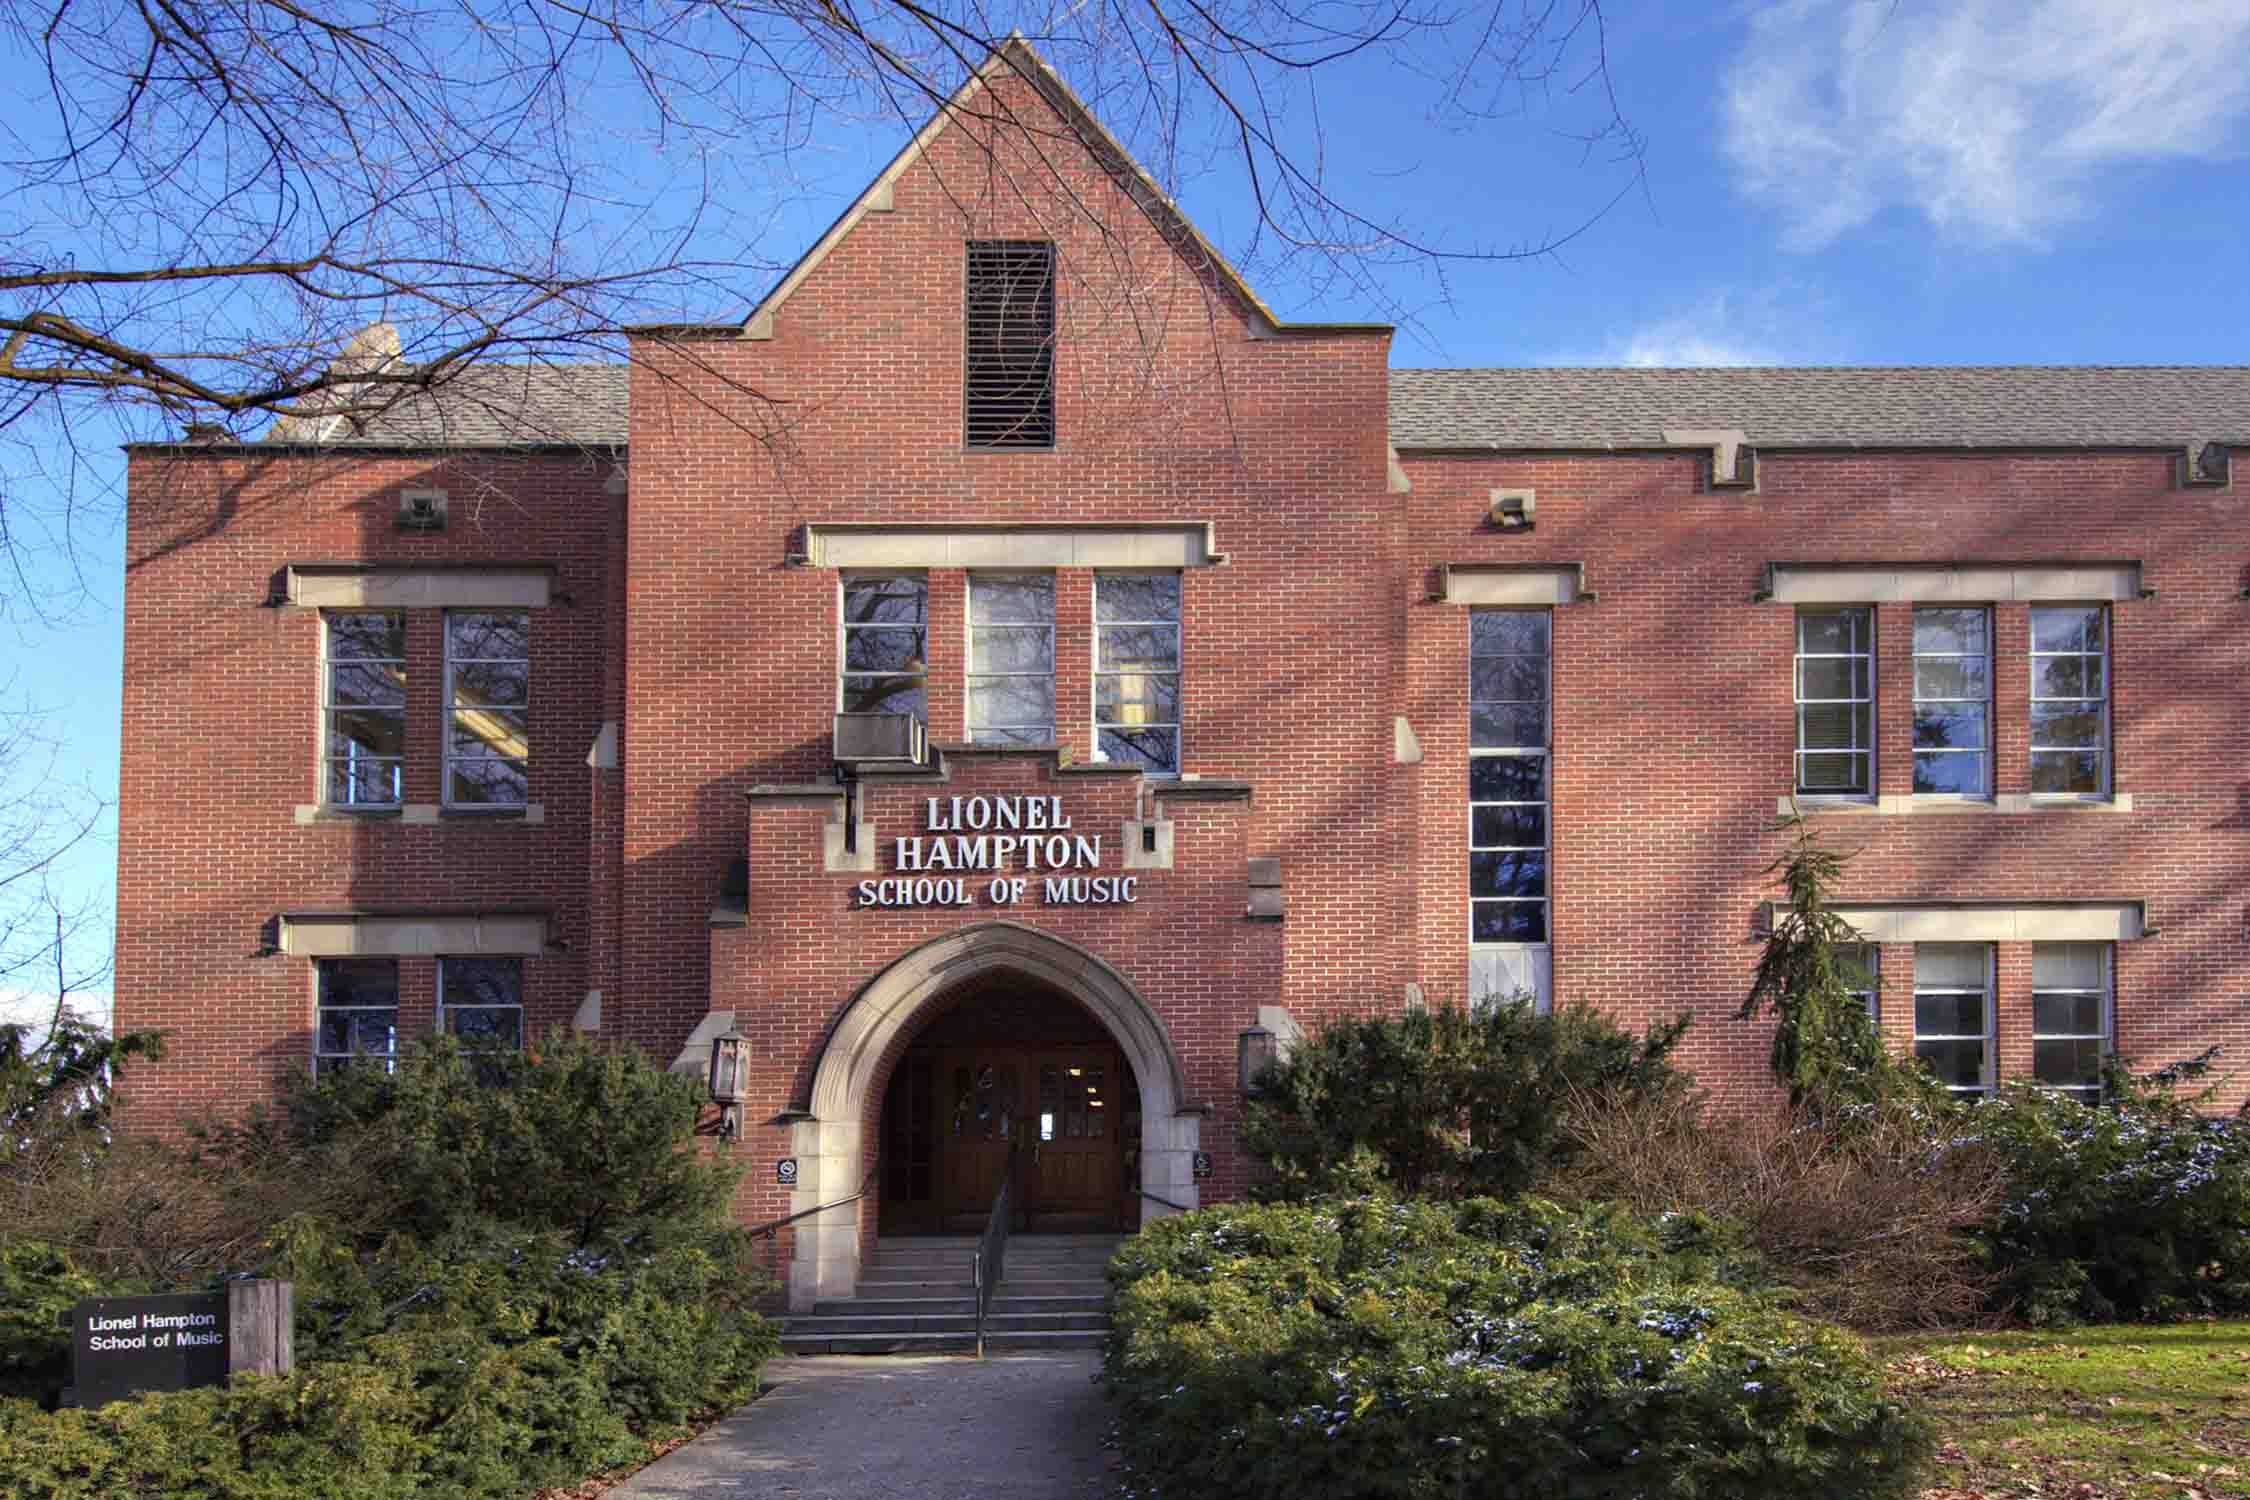 University of Idaho <br/> Lionel Hampton School of Music